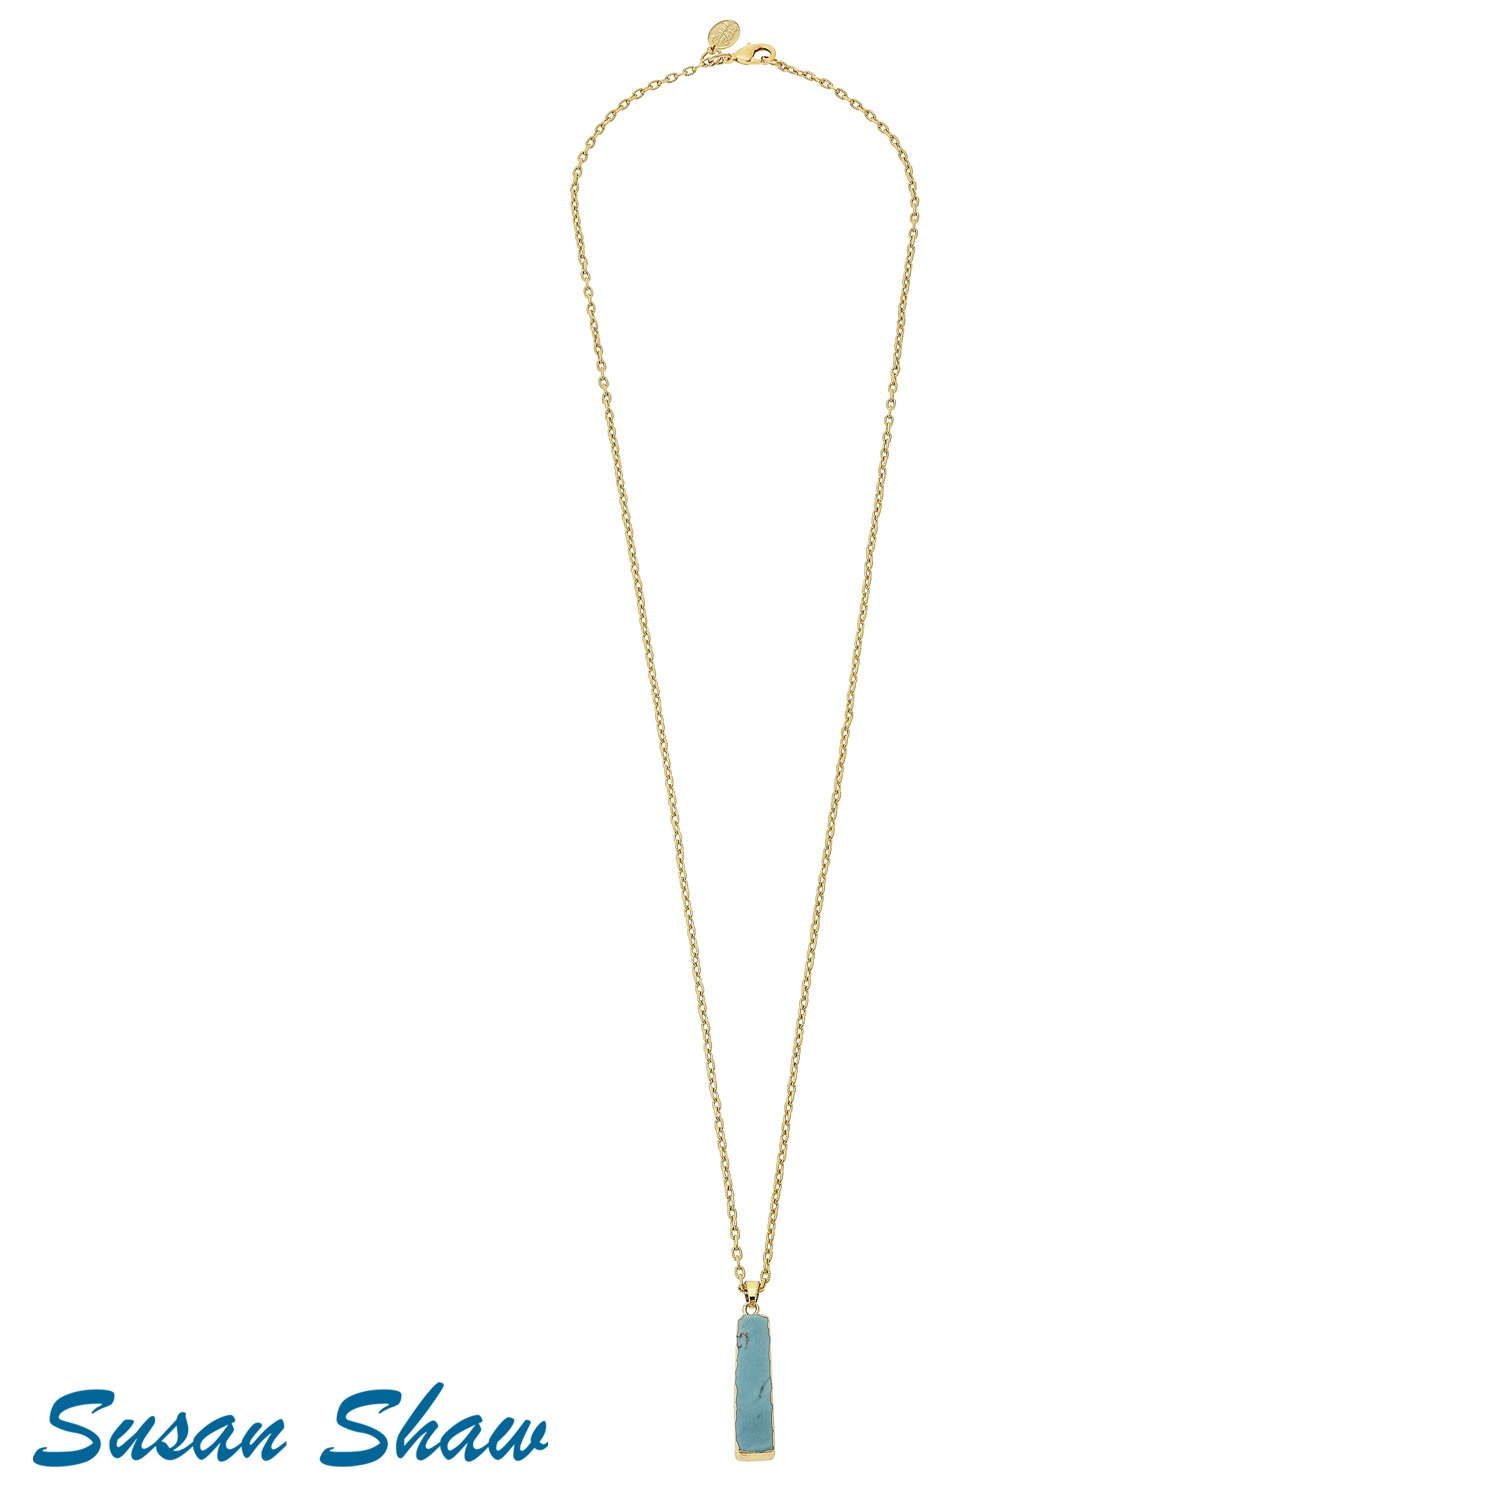 SUSAN SHAW TURQUOISE RECTANGLE LONG NECKLACE